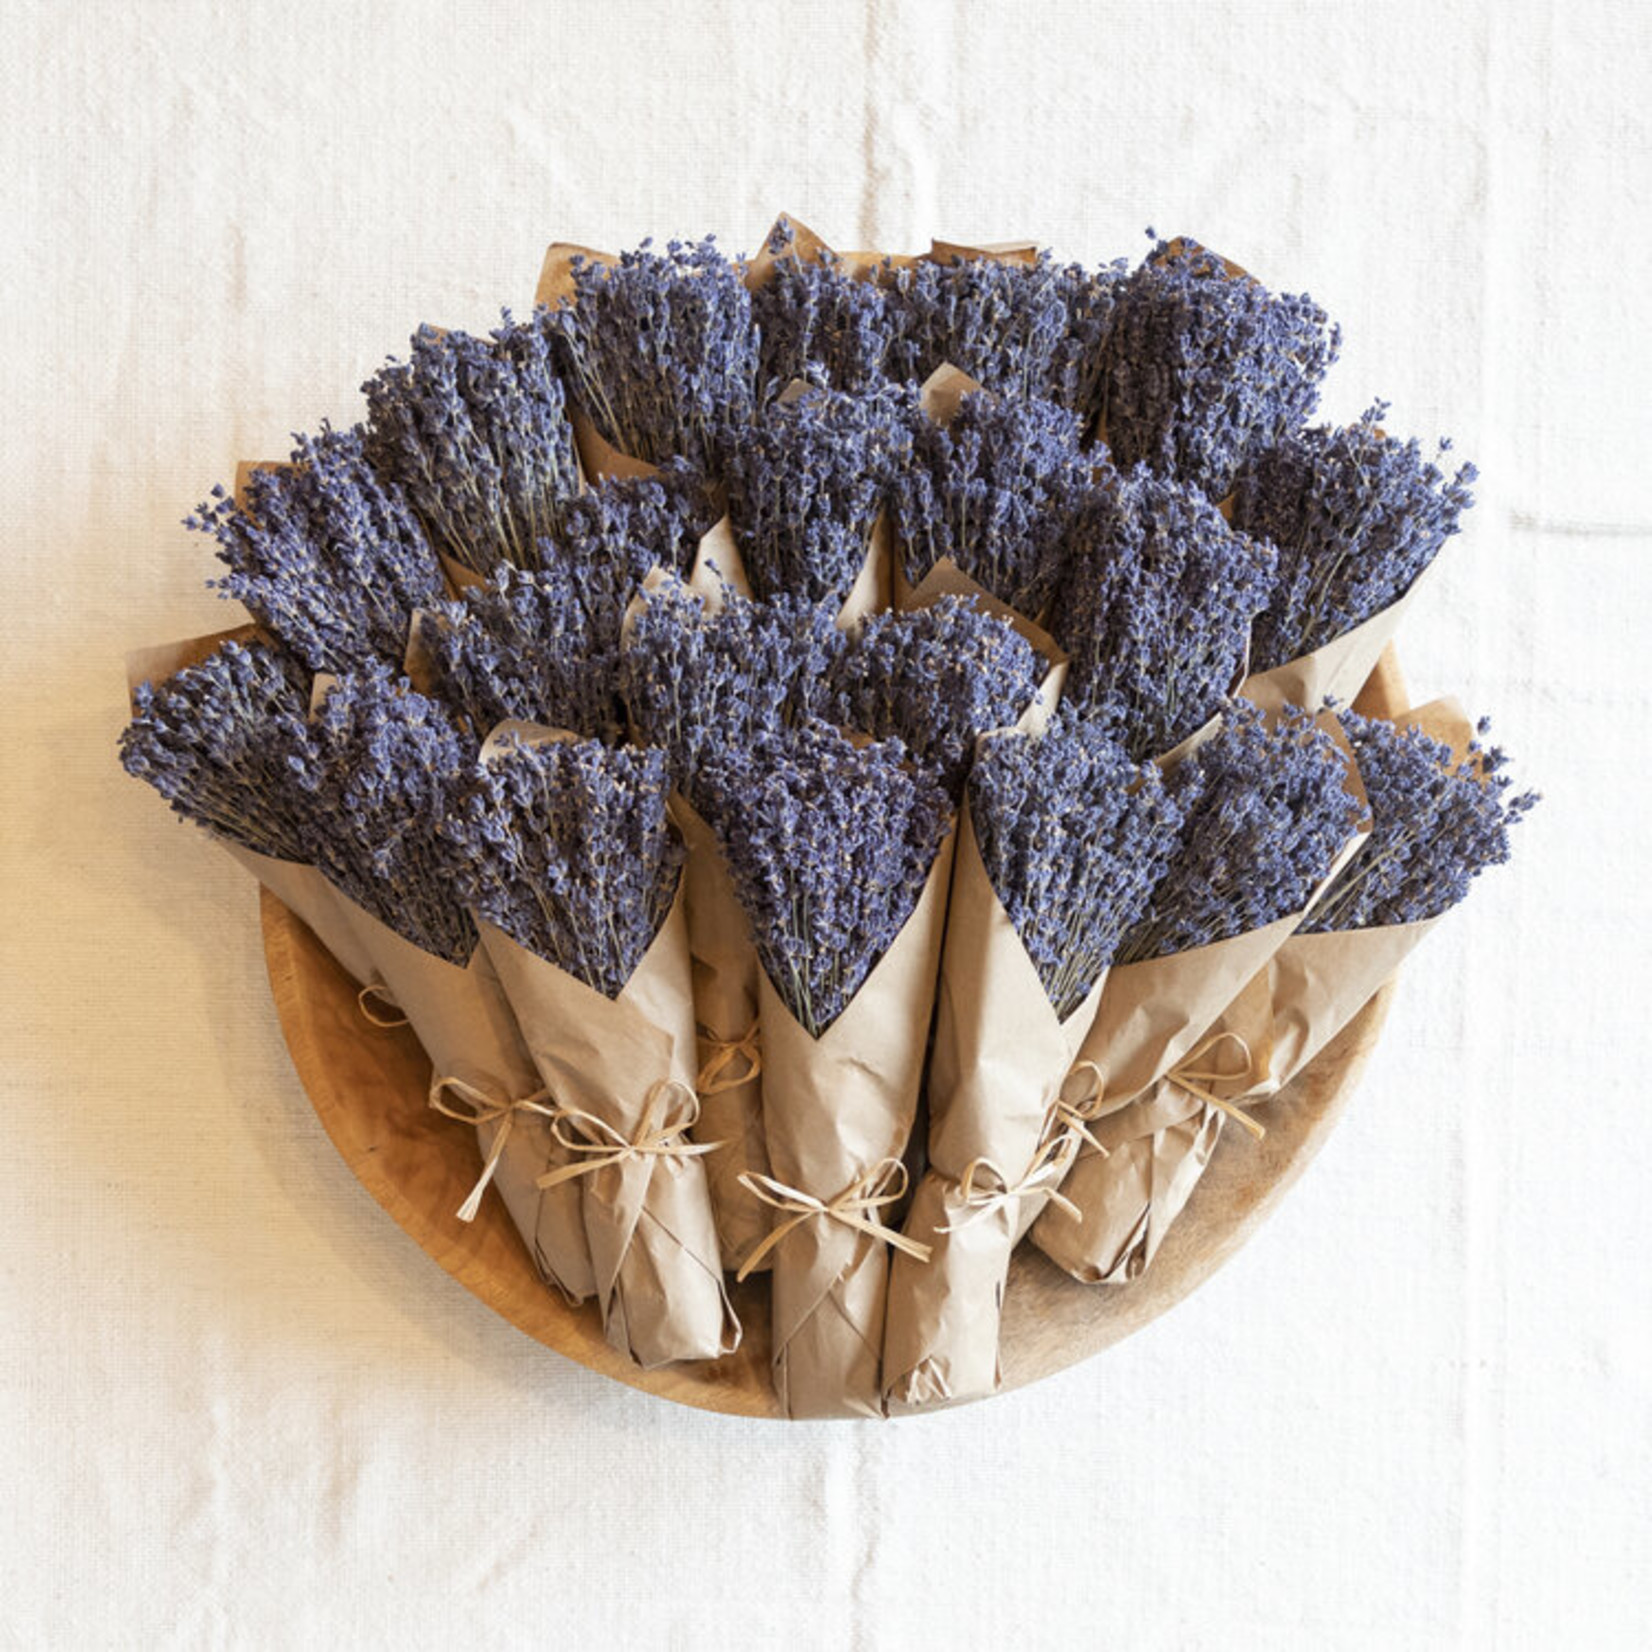 Kraft Paper Wrapped French Lavender